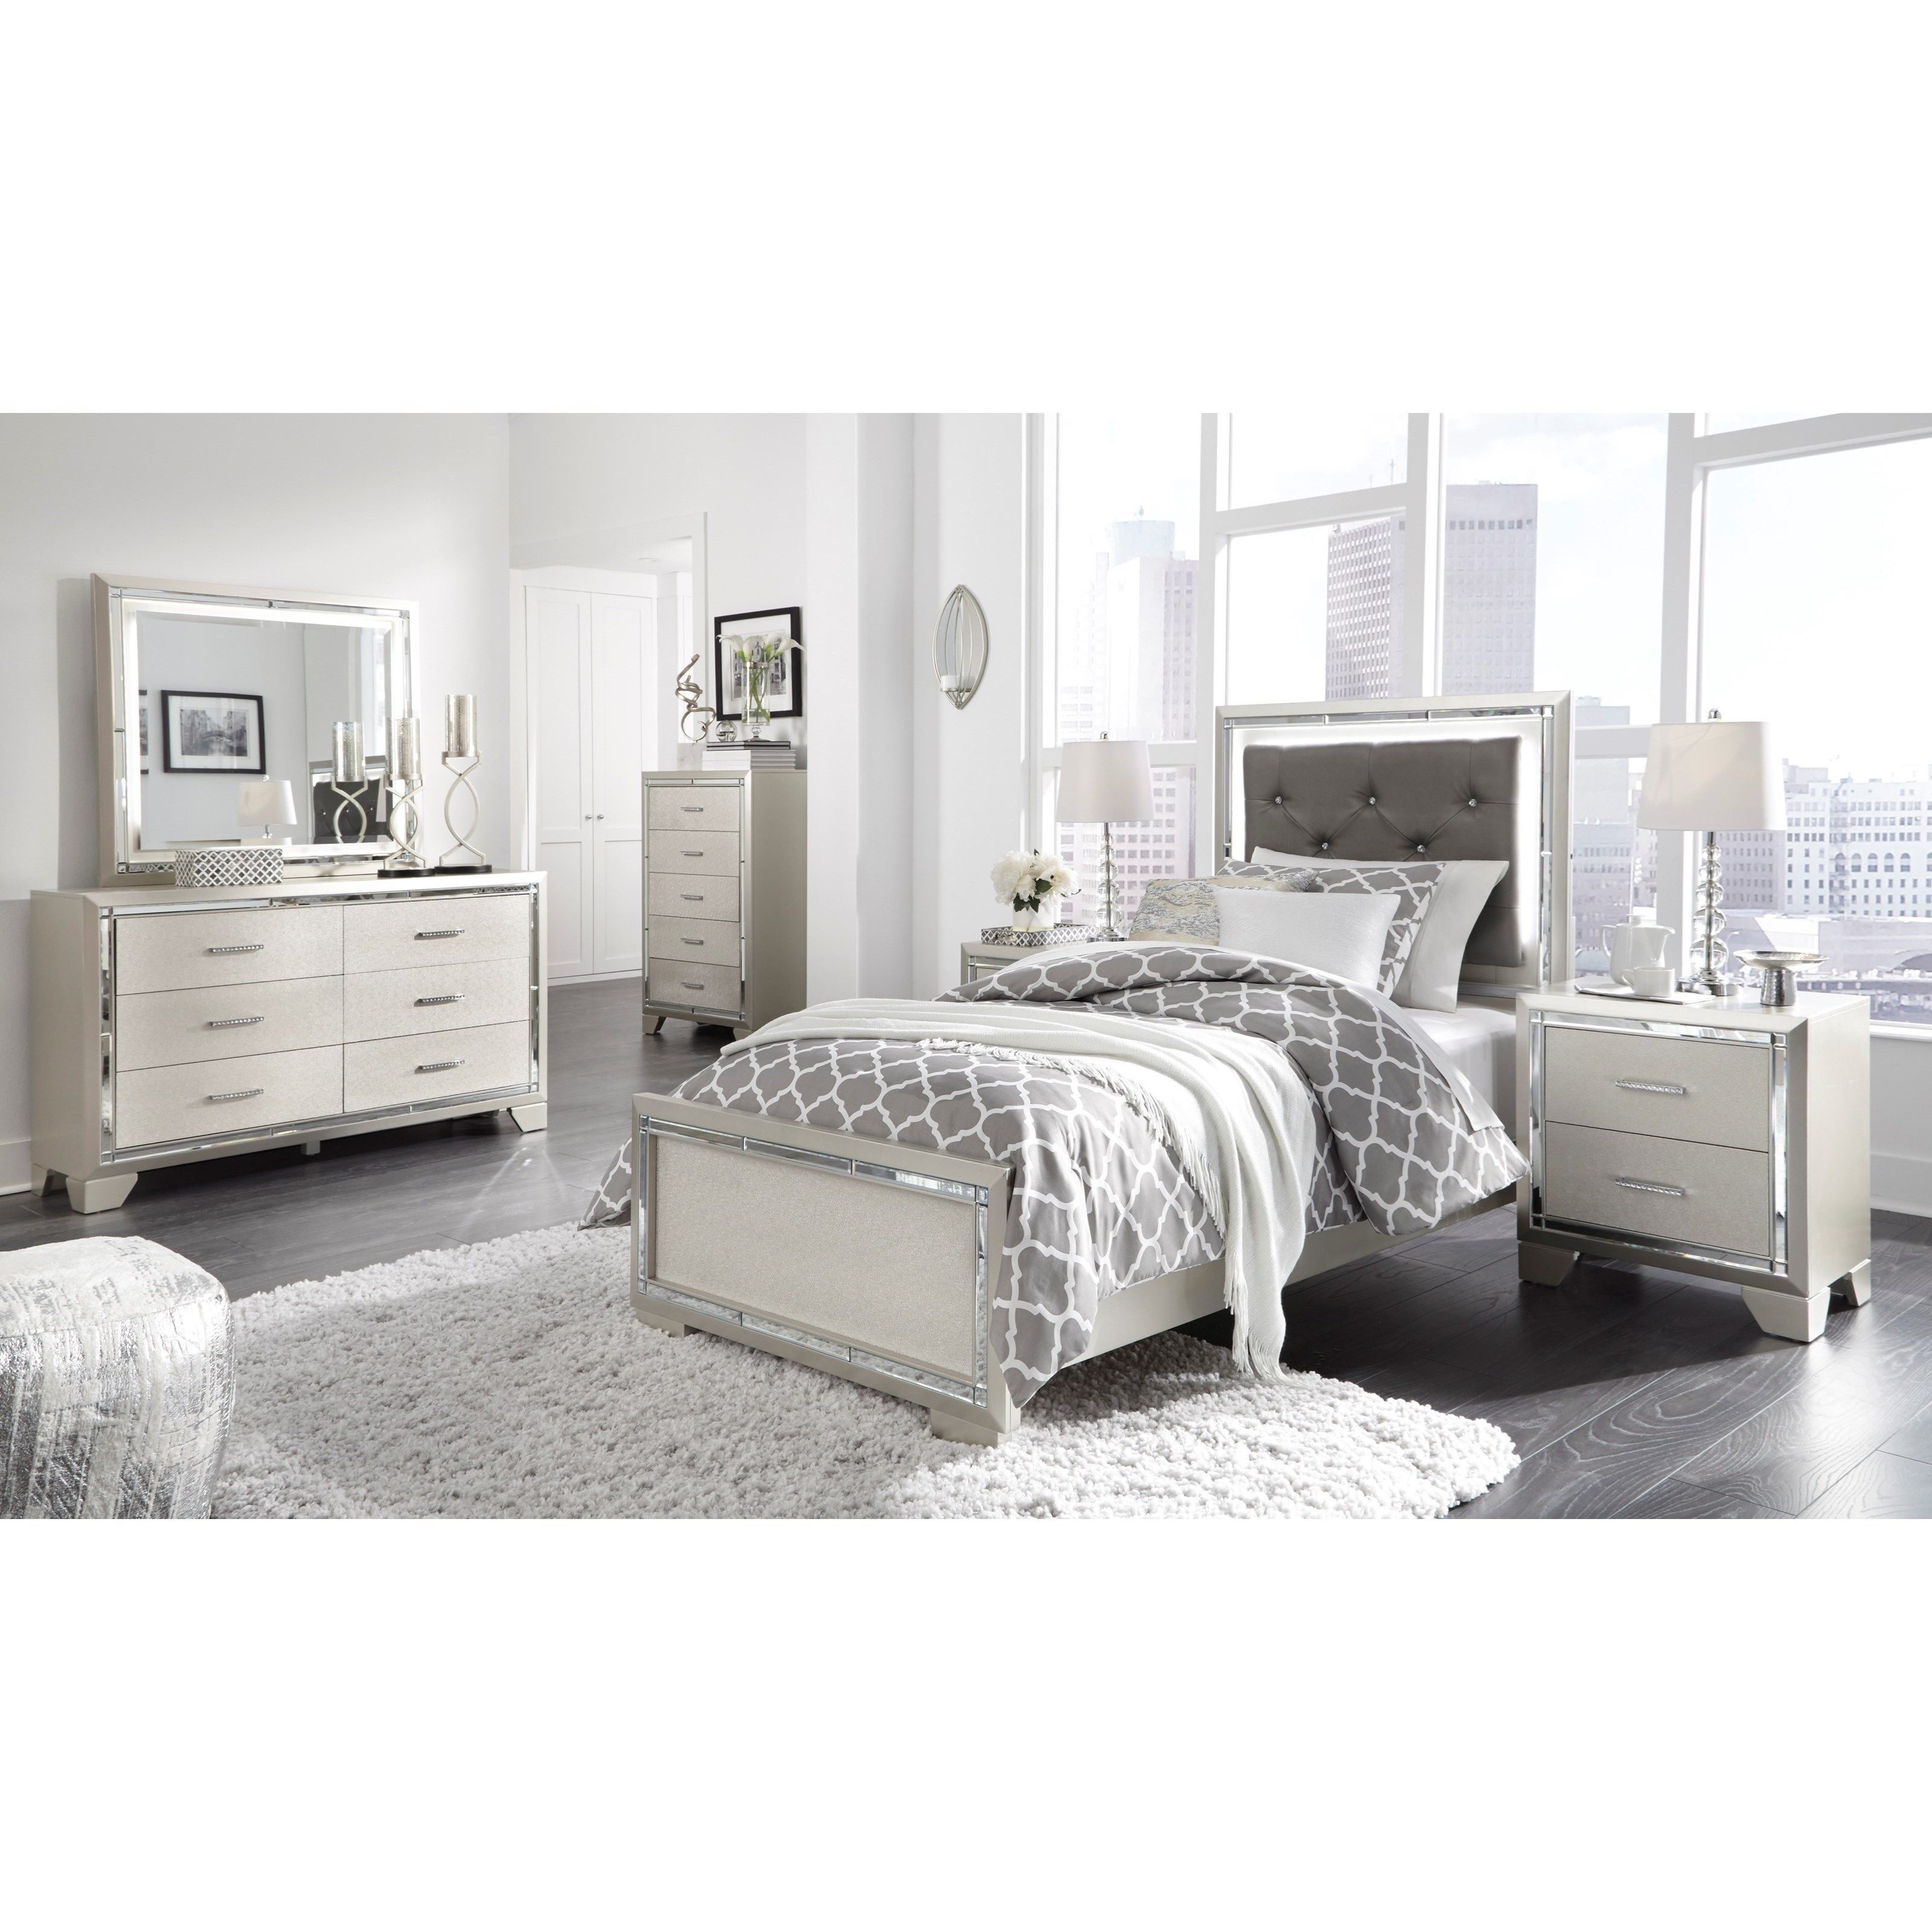 Lonnix Twin Bed Room Group By Signature Design By Ashley Mattress Furniture Bedroom Panel Furniture